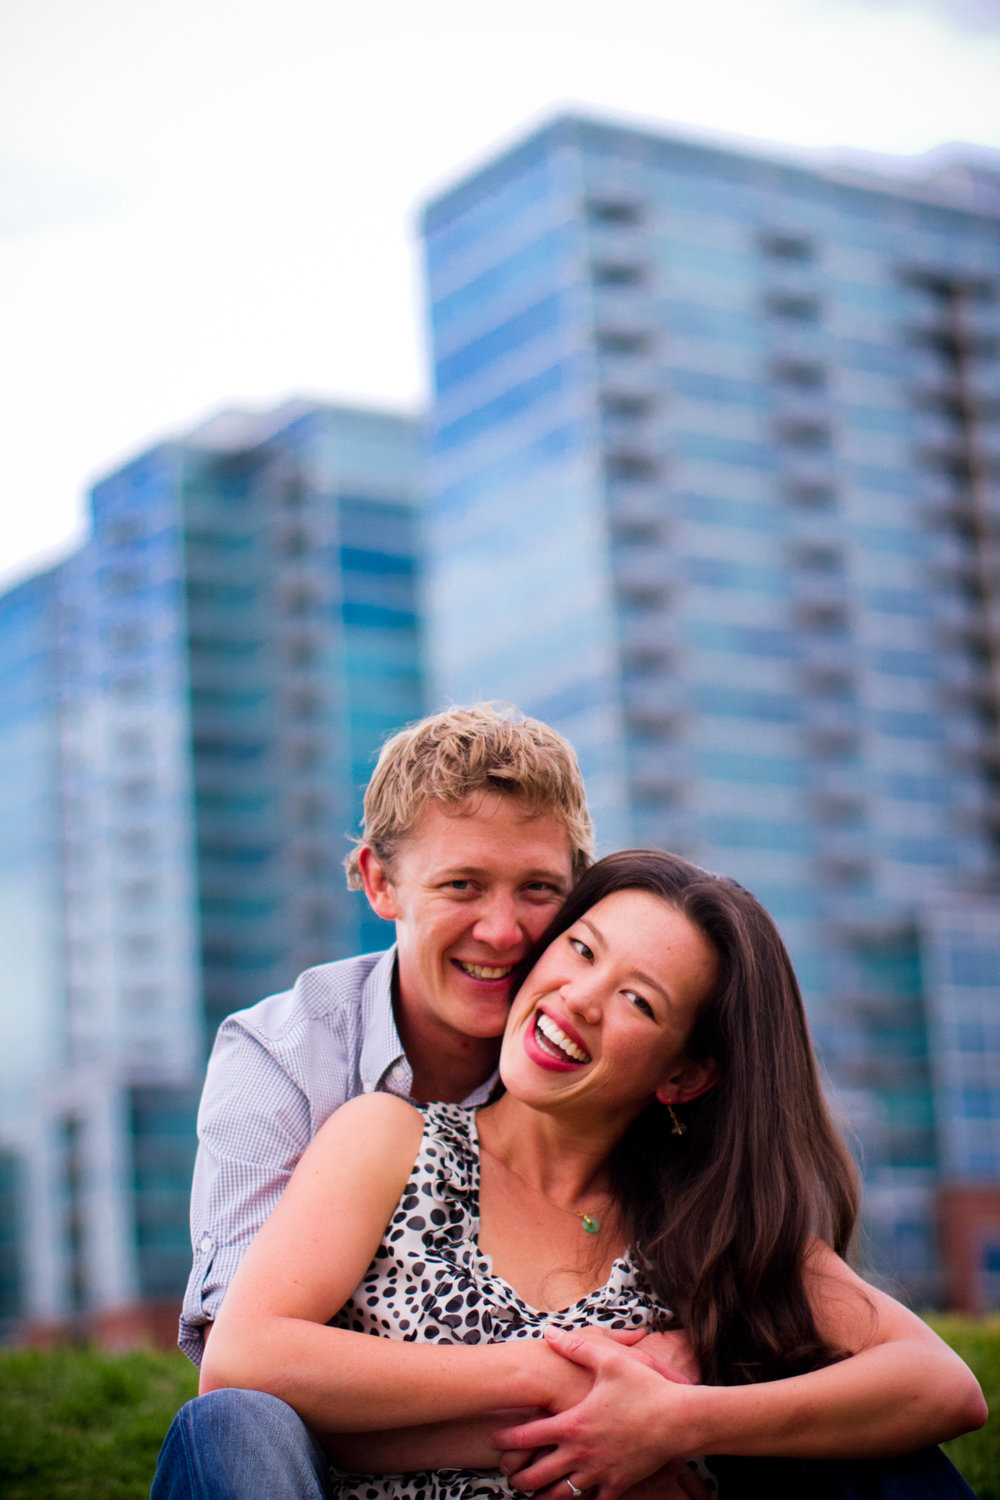 LoDo_Denver_Engagement_Photos_005.JPG